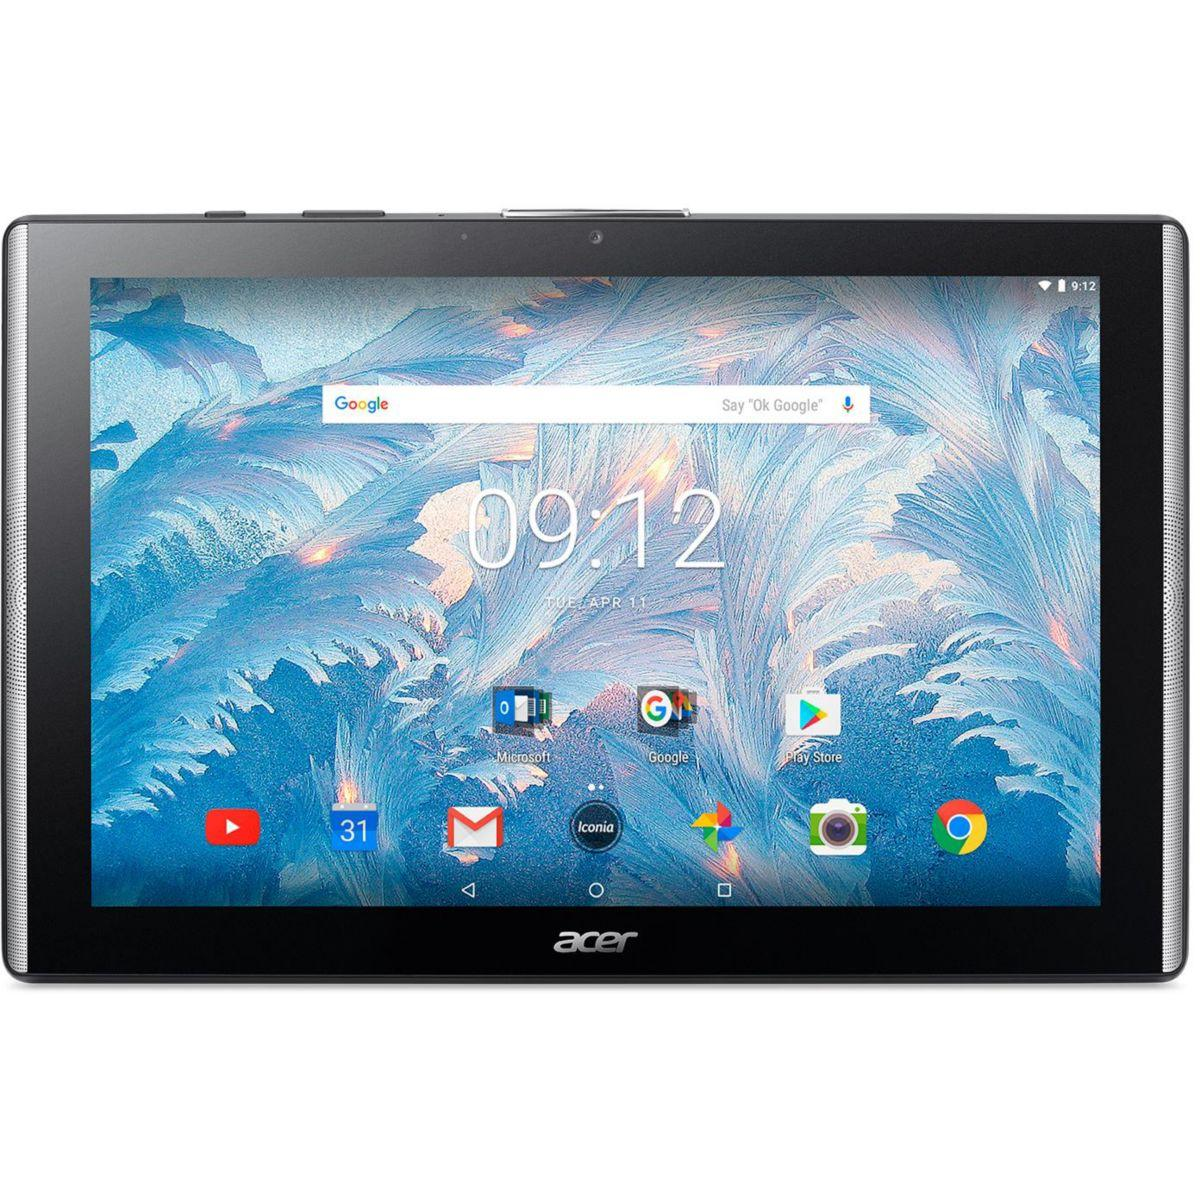 Tablette acer iconia one 10 b3-a40fhd-k0 - livraison offerte : code liv (photo)